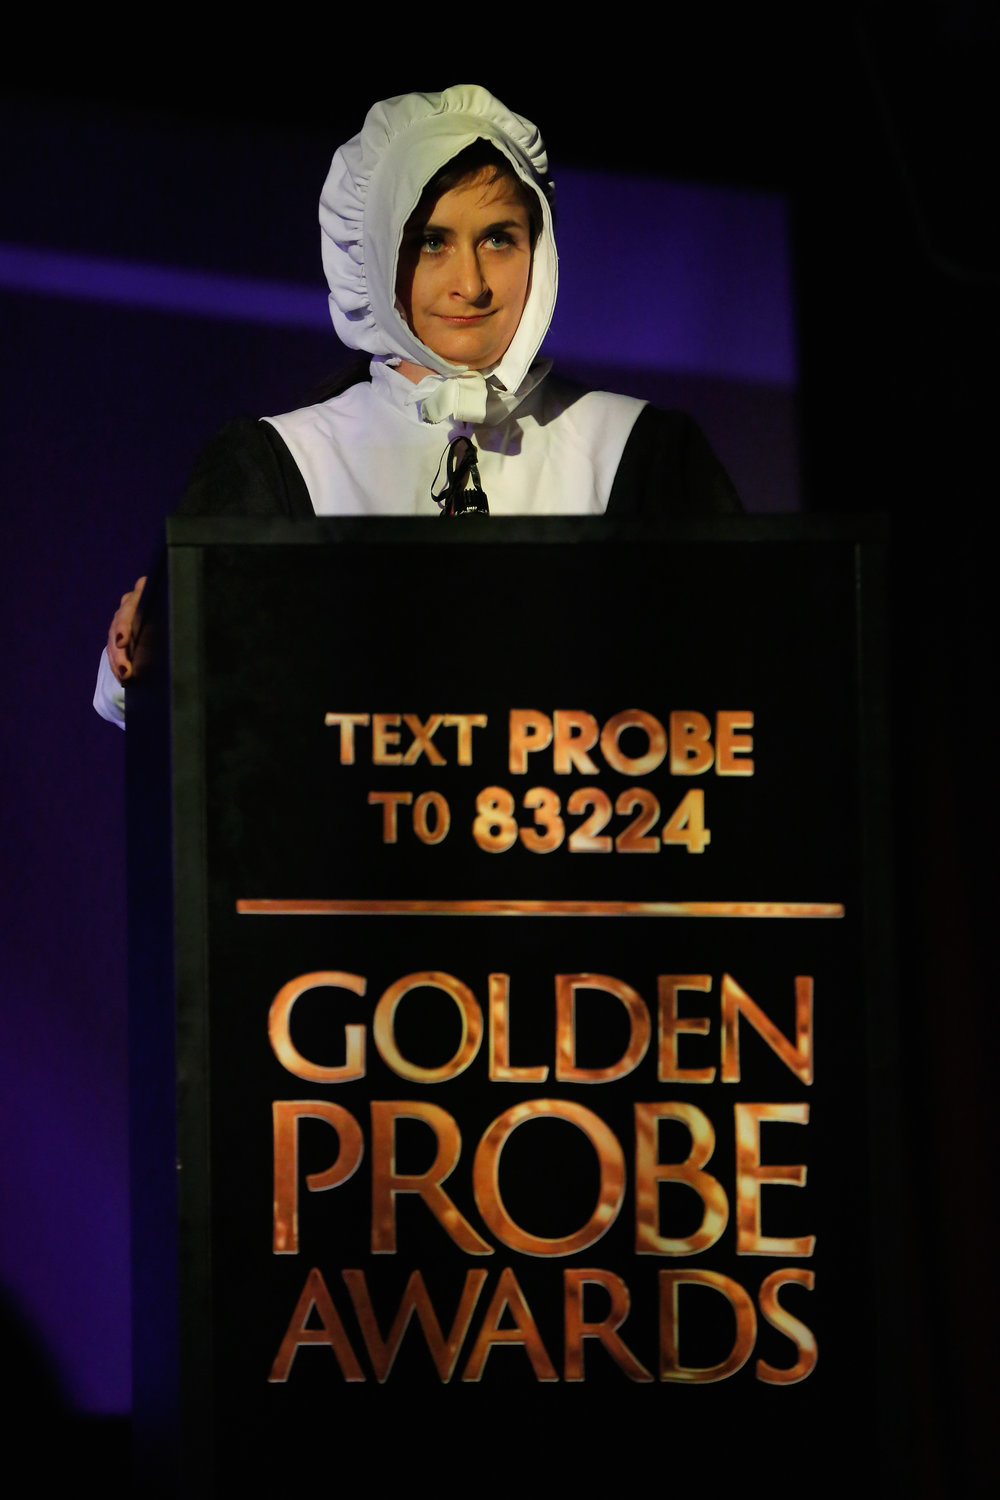 Molly Gaebe (Photo by Astrid Stawiarz/Getty Images for Lady Parts Justice)